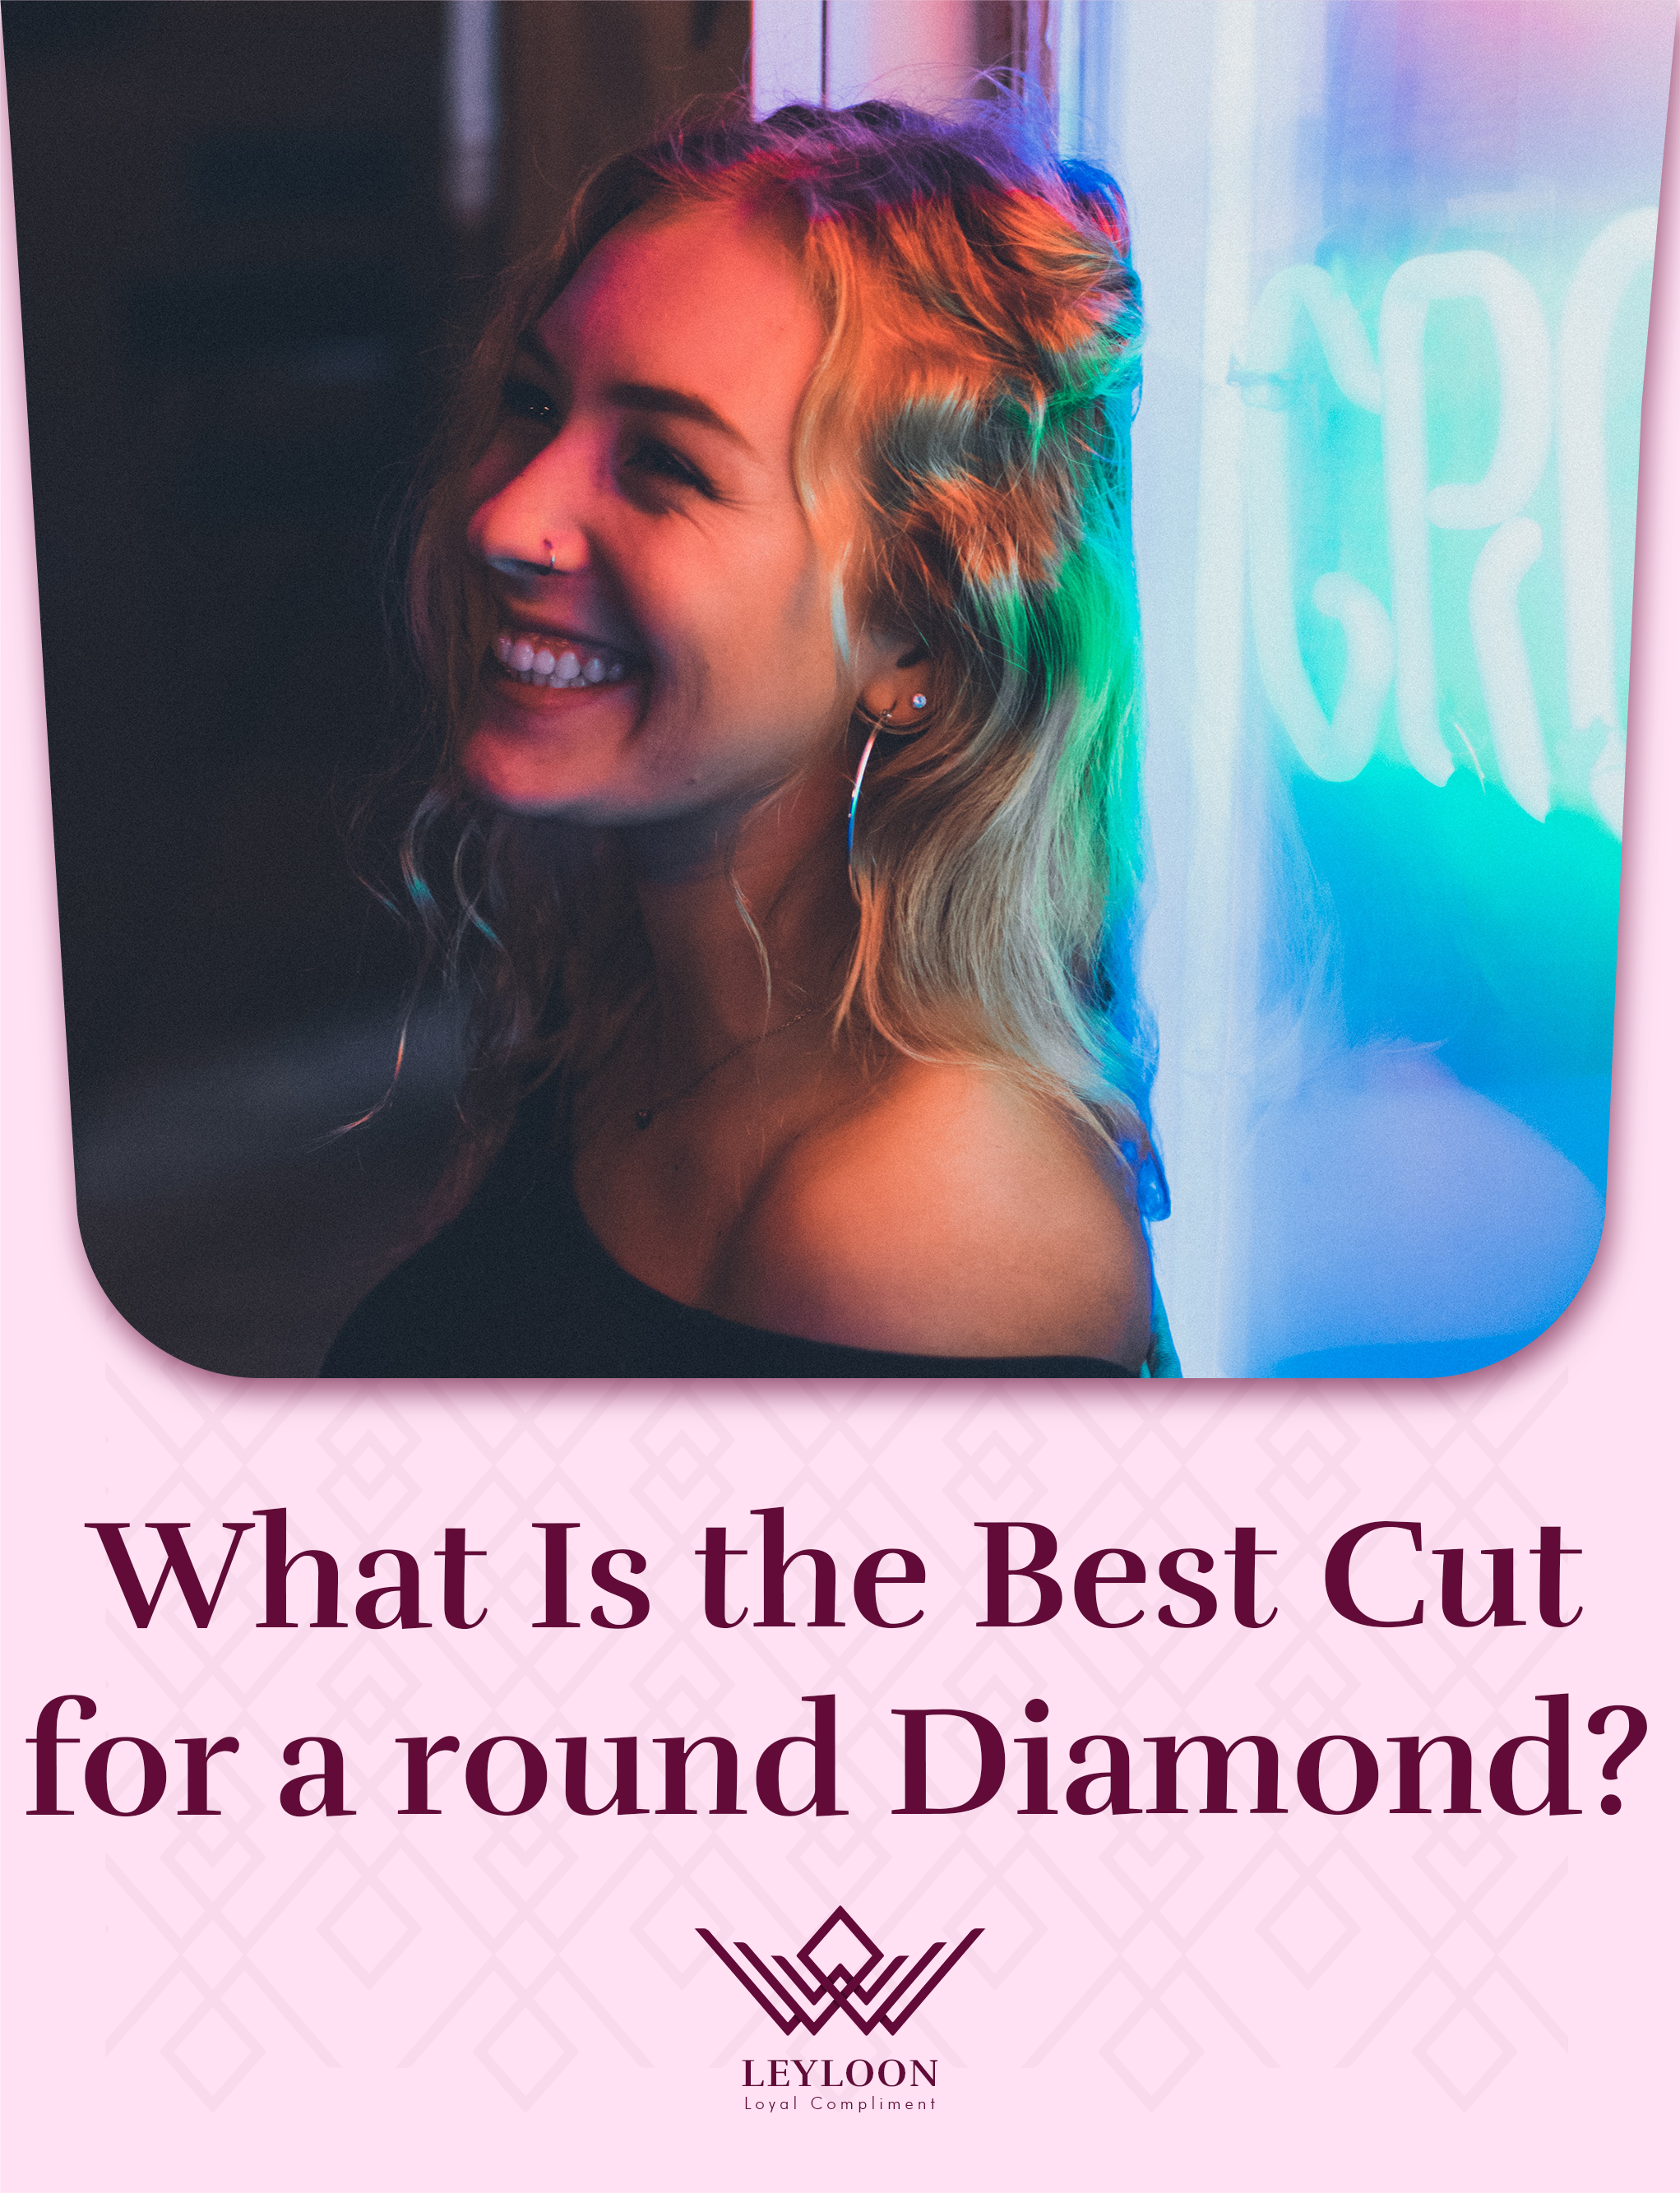 What Is the Best Cut for a round Diamond?